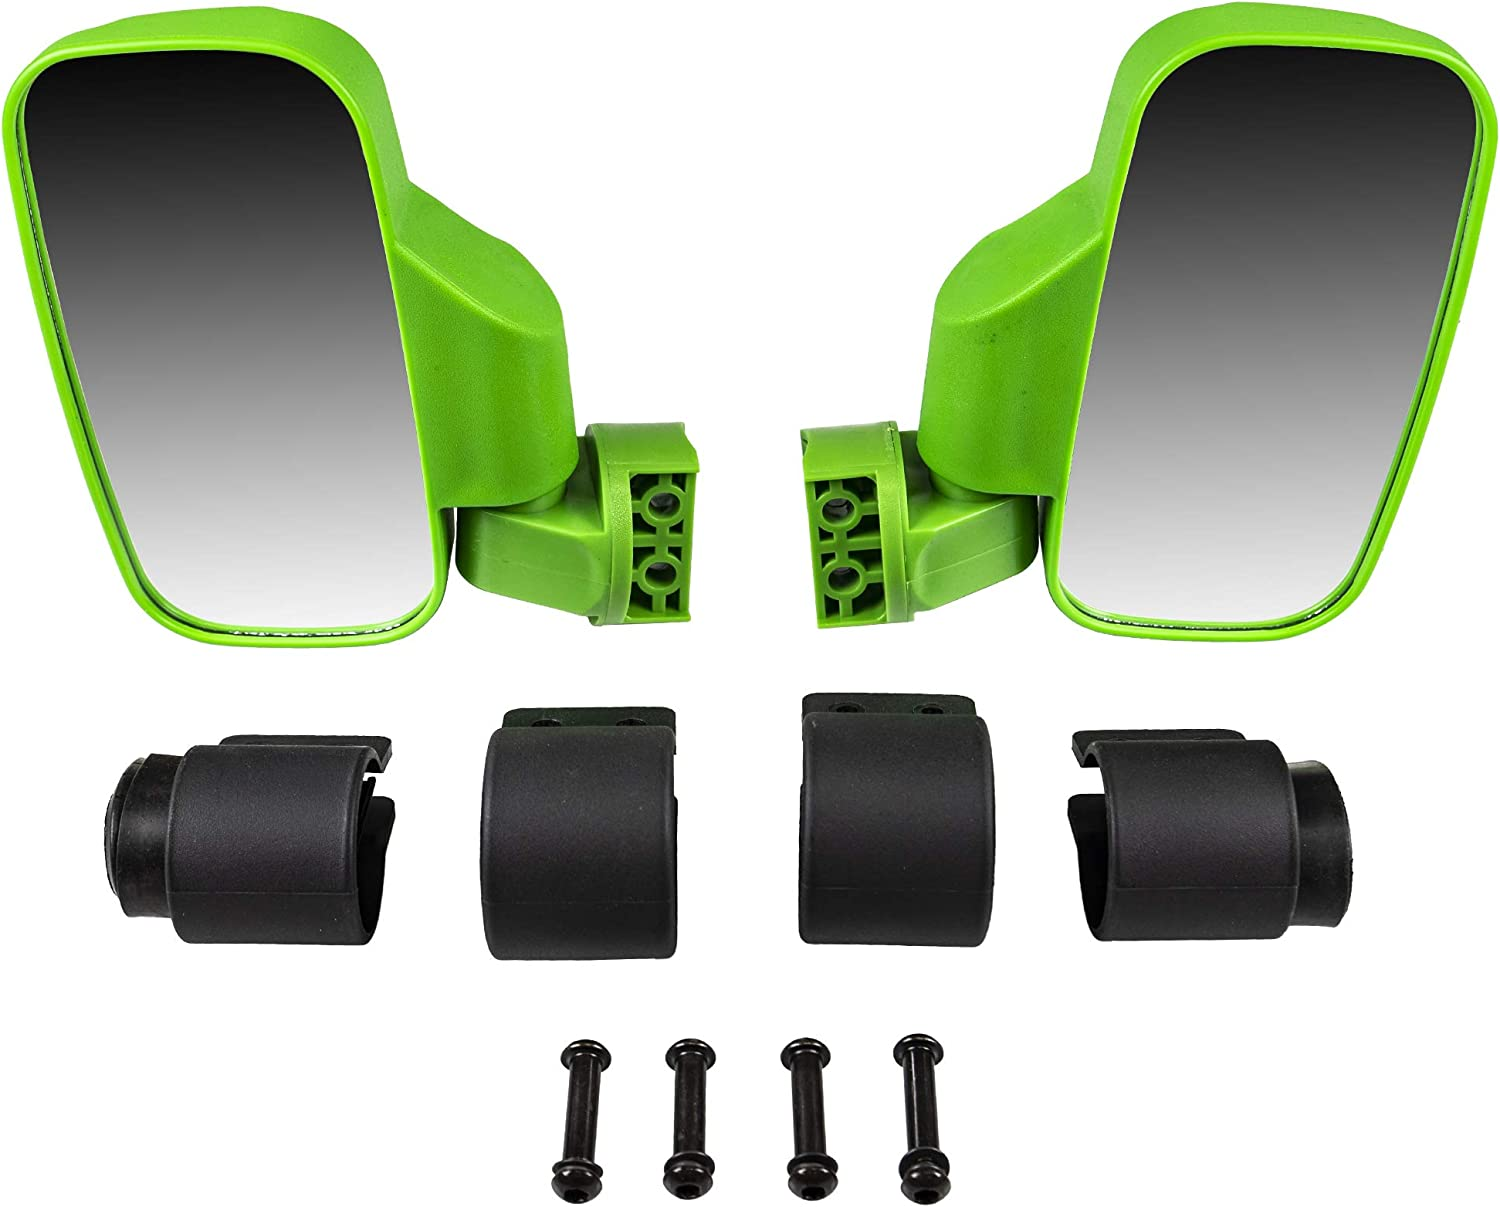 NICHE Yellow Offroad Break-Away Side View Mirror Set for UTV Side x Side Utility Vehicle with Pro-Fit Roll Cage Bar